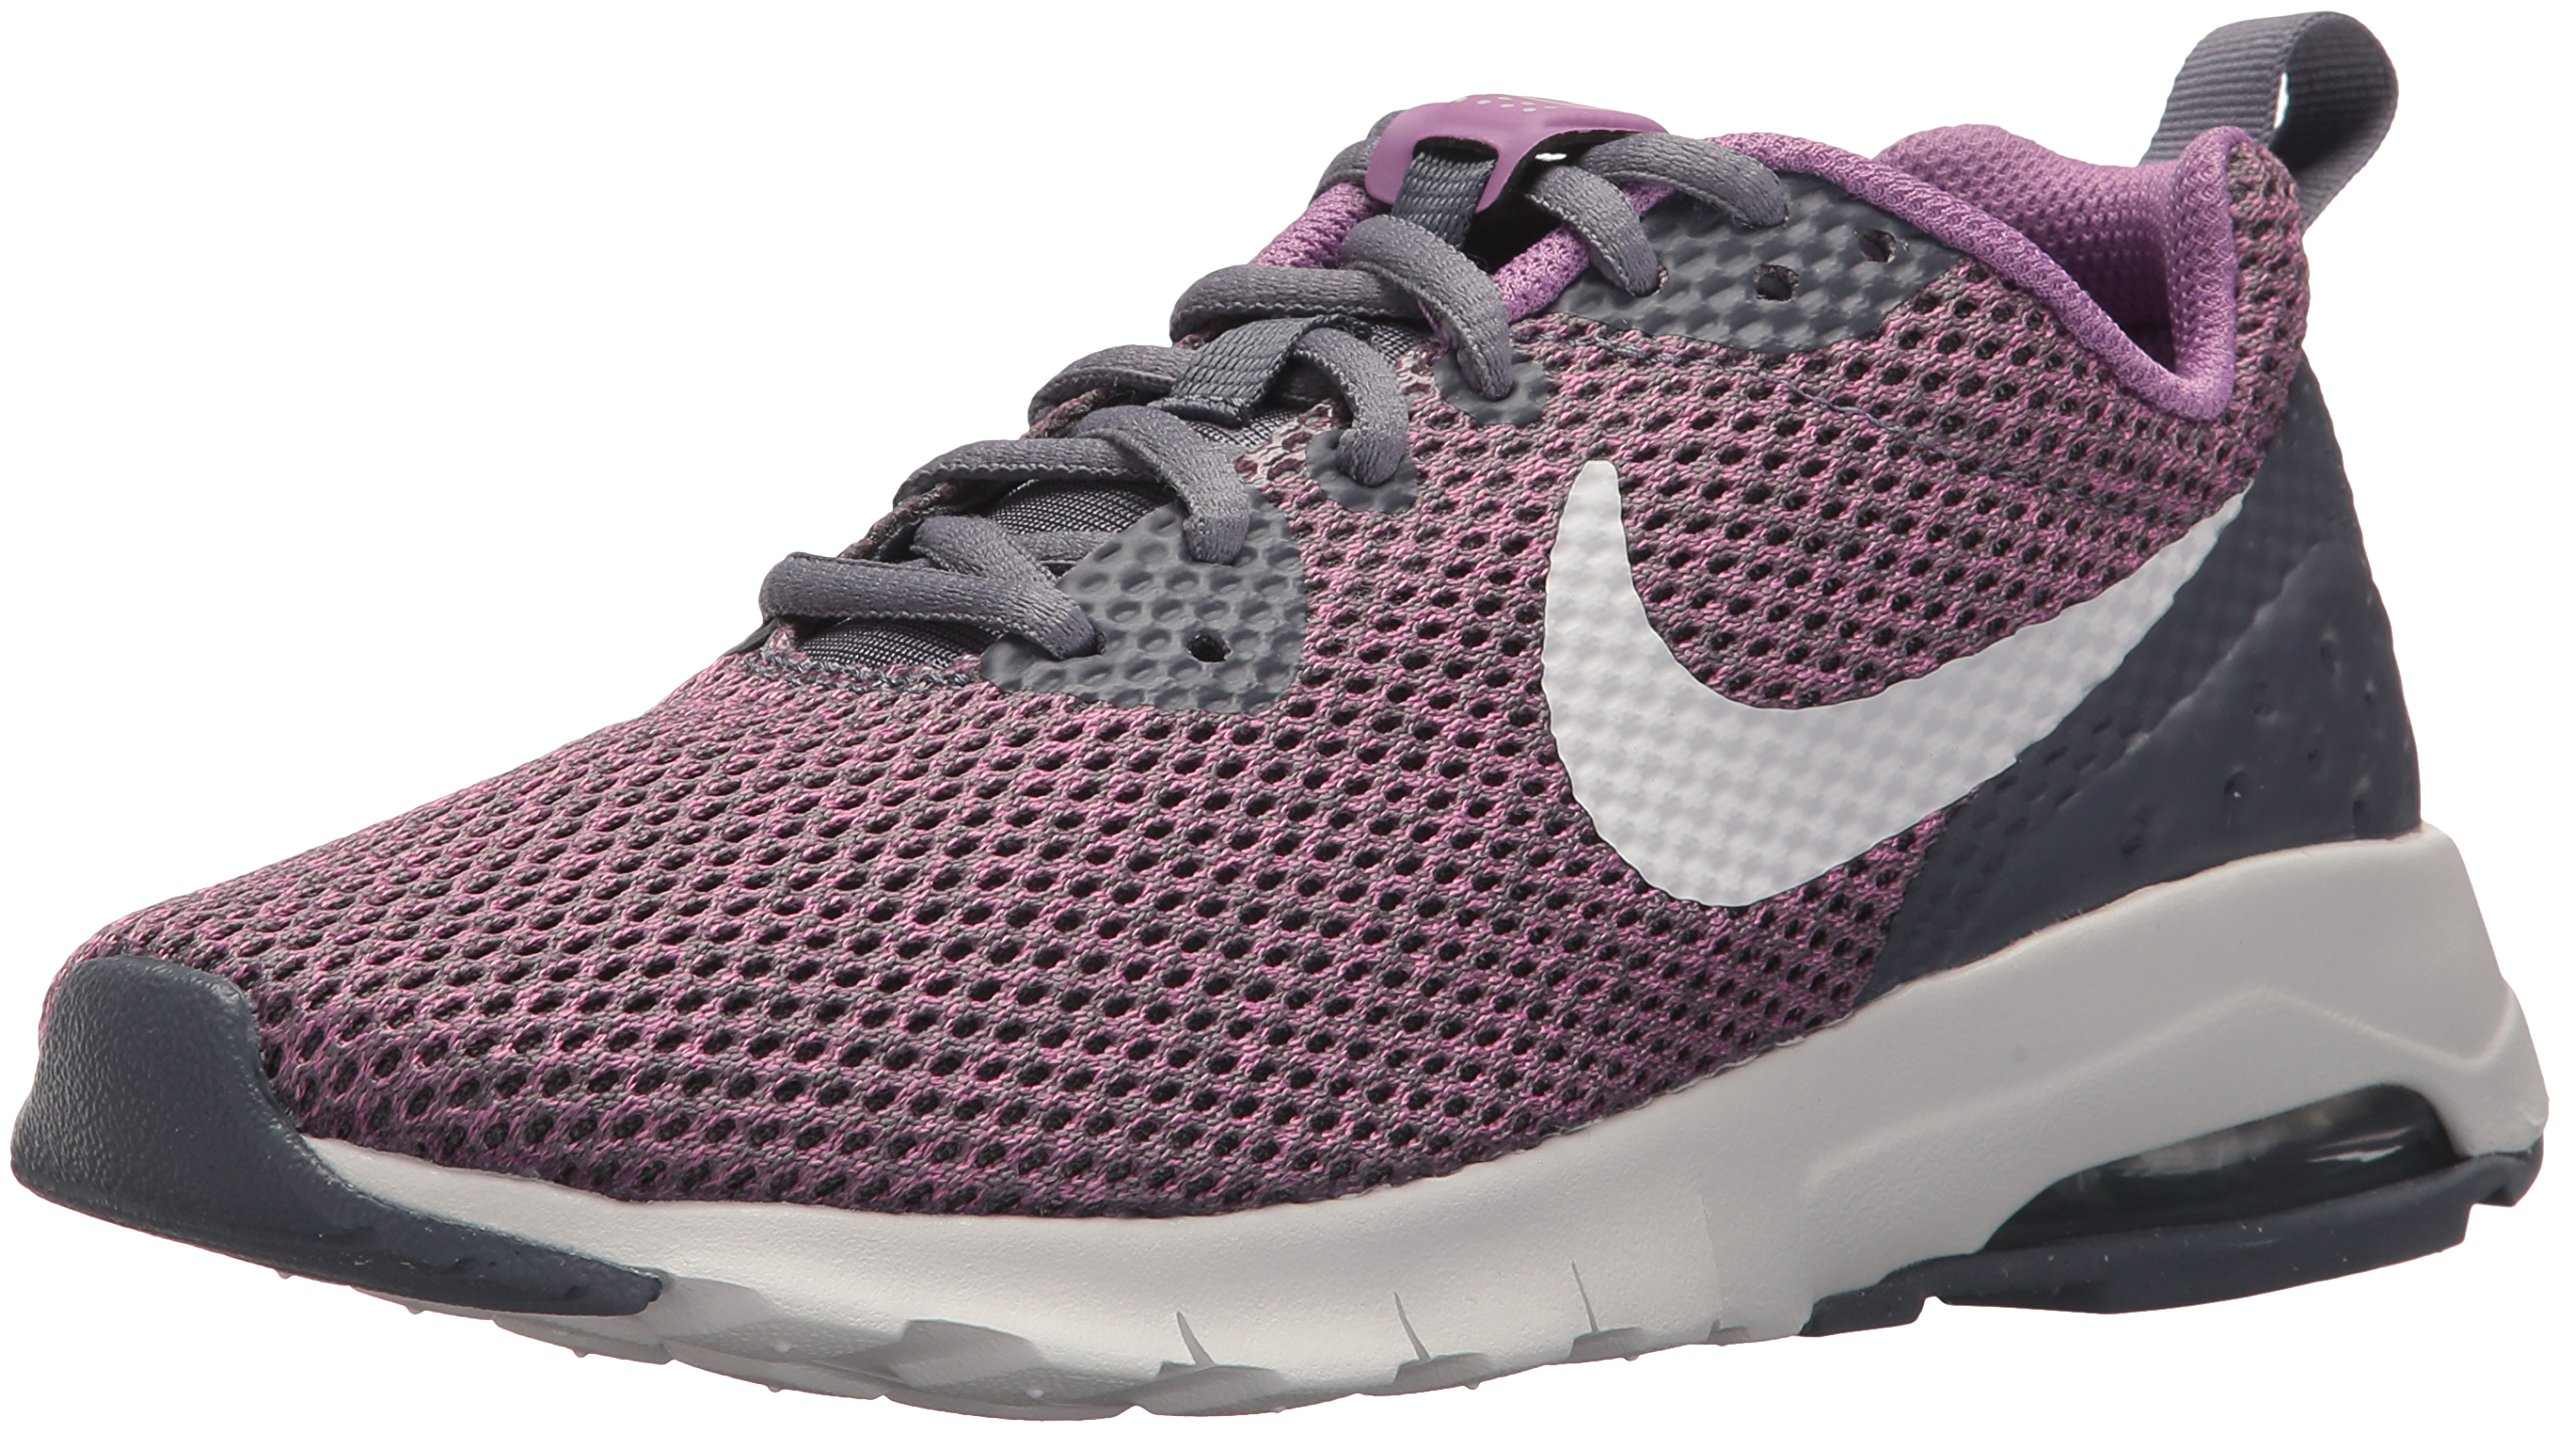 563b203f3d Galleon - NIKE Women's Air Max Motion LW Running Shoe, Light Carbon/Vast  Grey/Dark Orchid, 12 B US